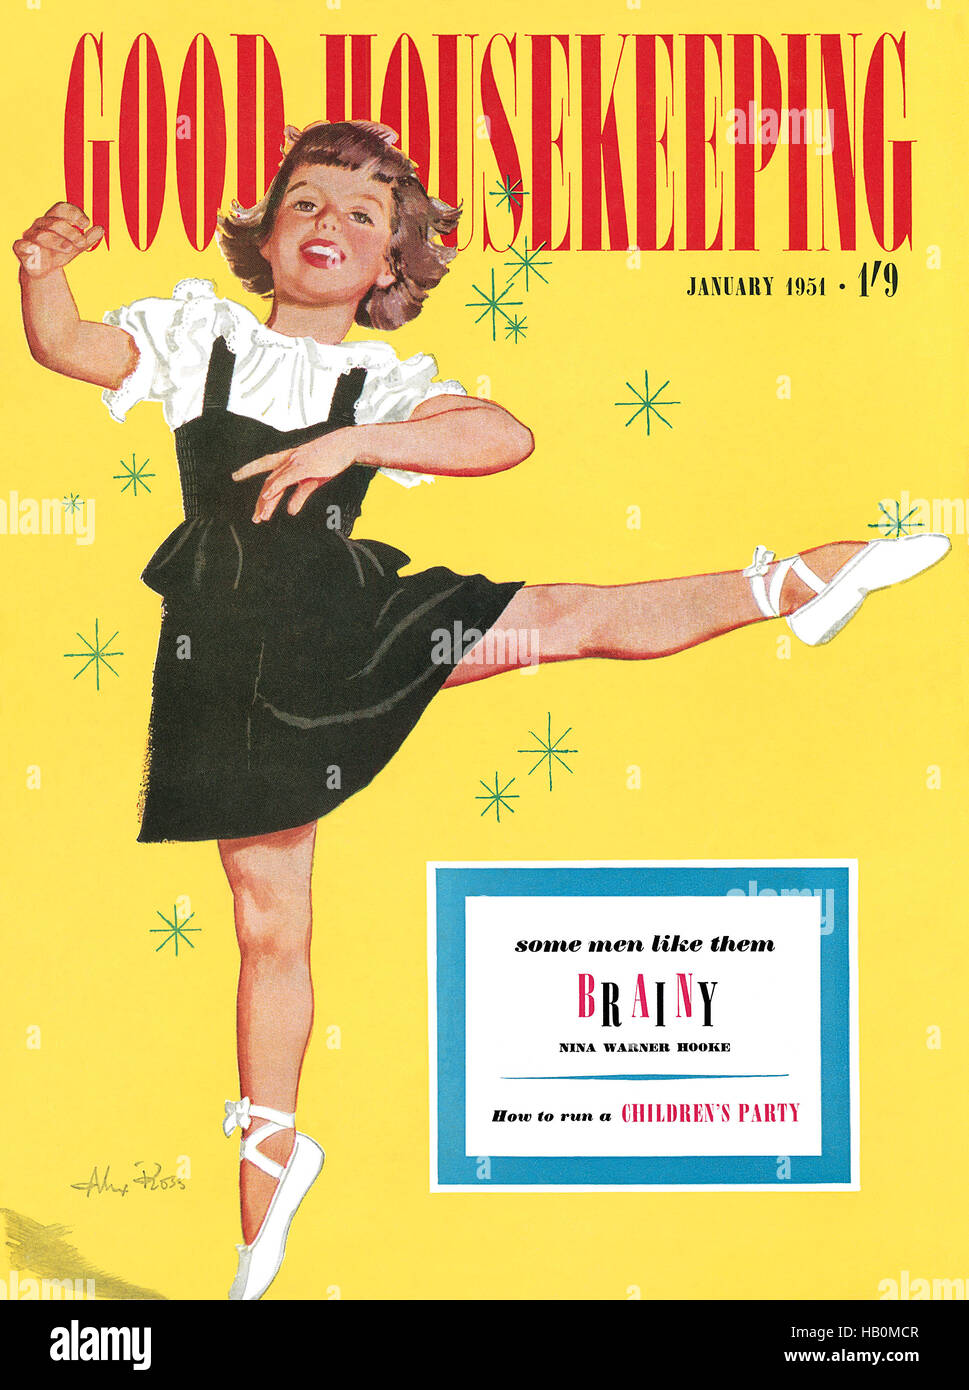 Front cover of Good Housekeeping magazine for January 1951 with an illustration by Alex Ross - Stock Image